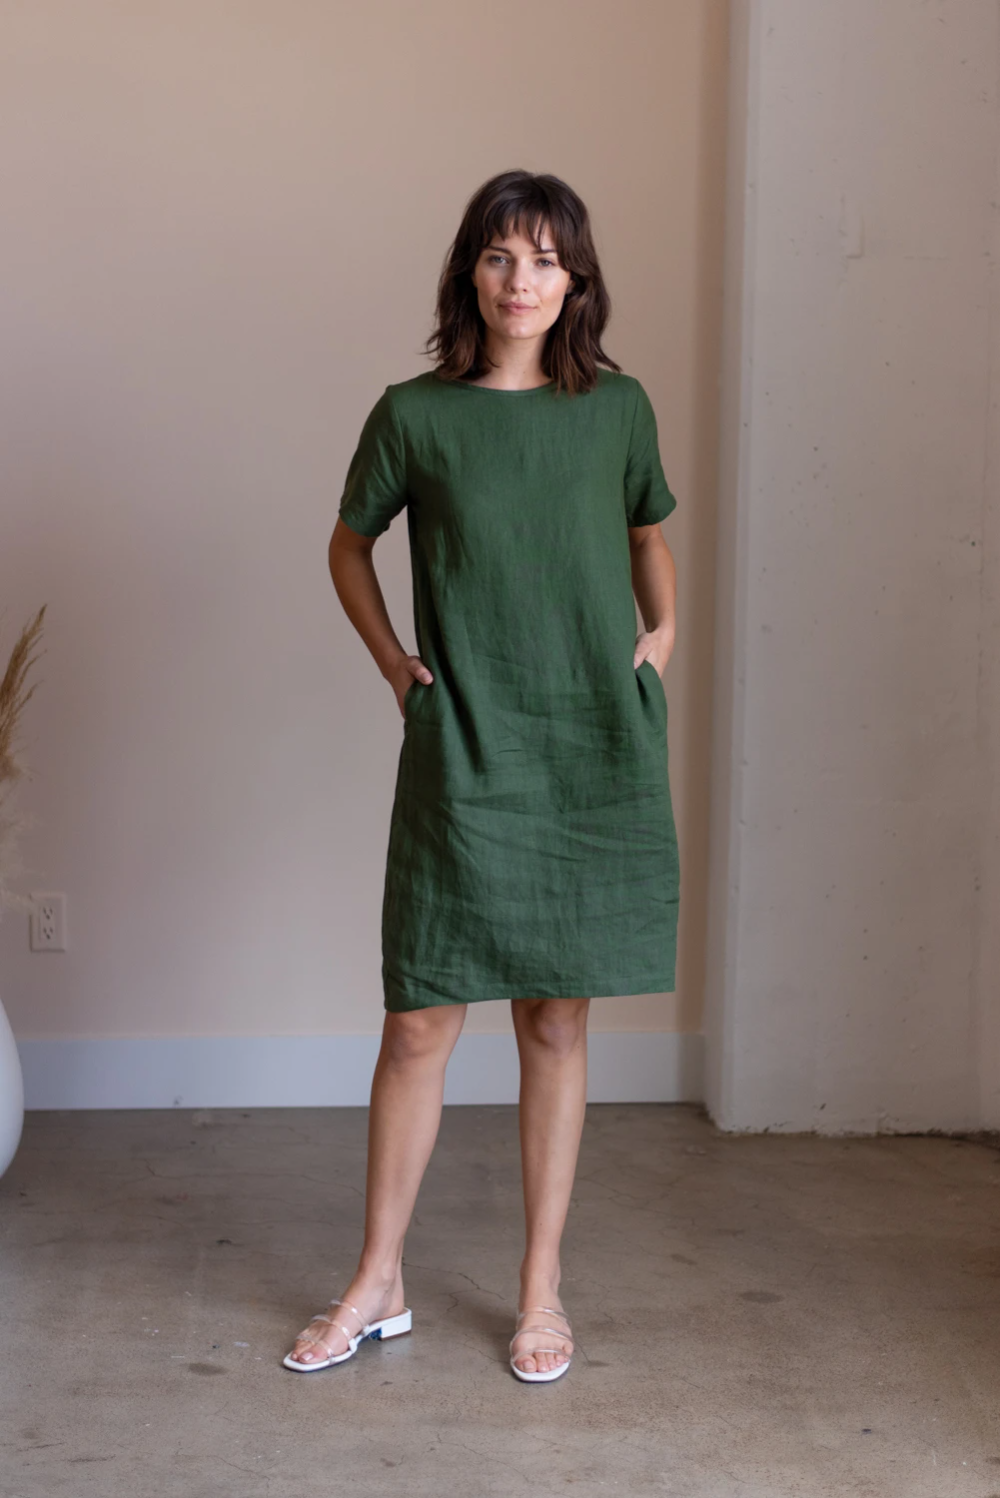 Cocoon shaped style dress ILONA  Linen cocoon dress  Fashionable dress  Blue soft linen dress midi length Natural color